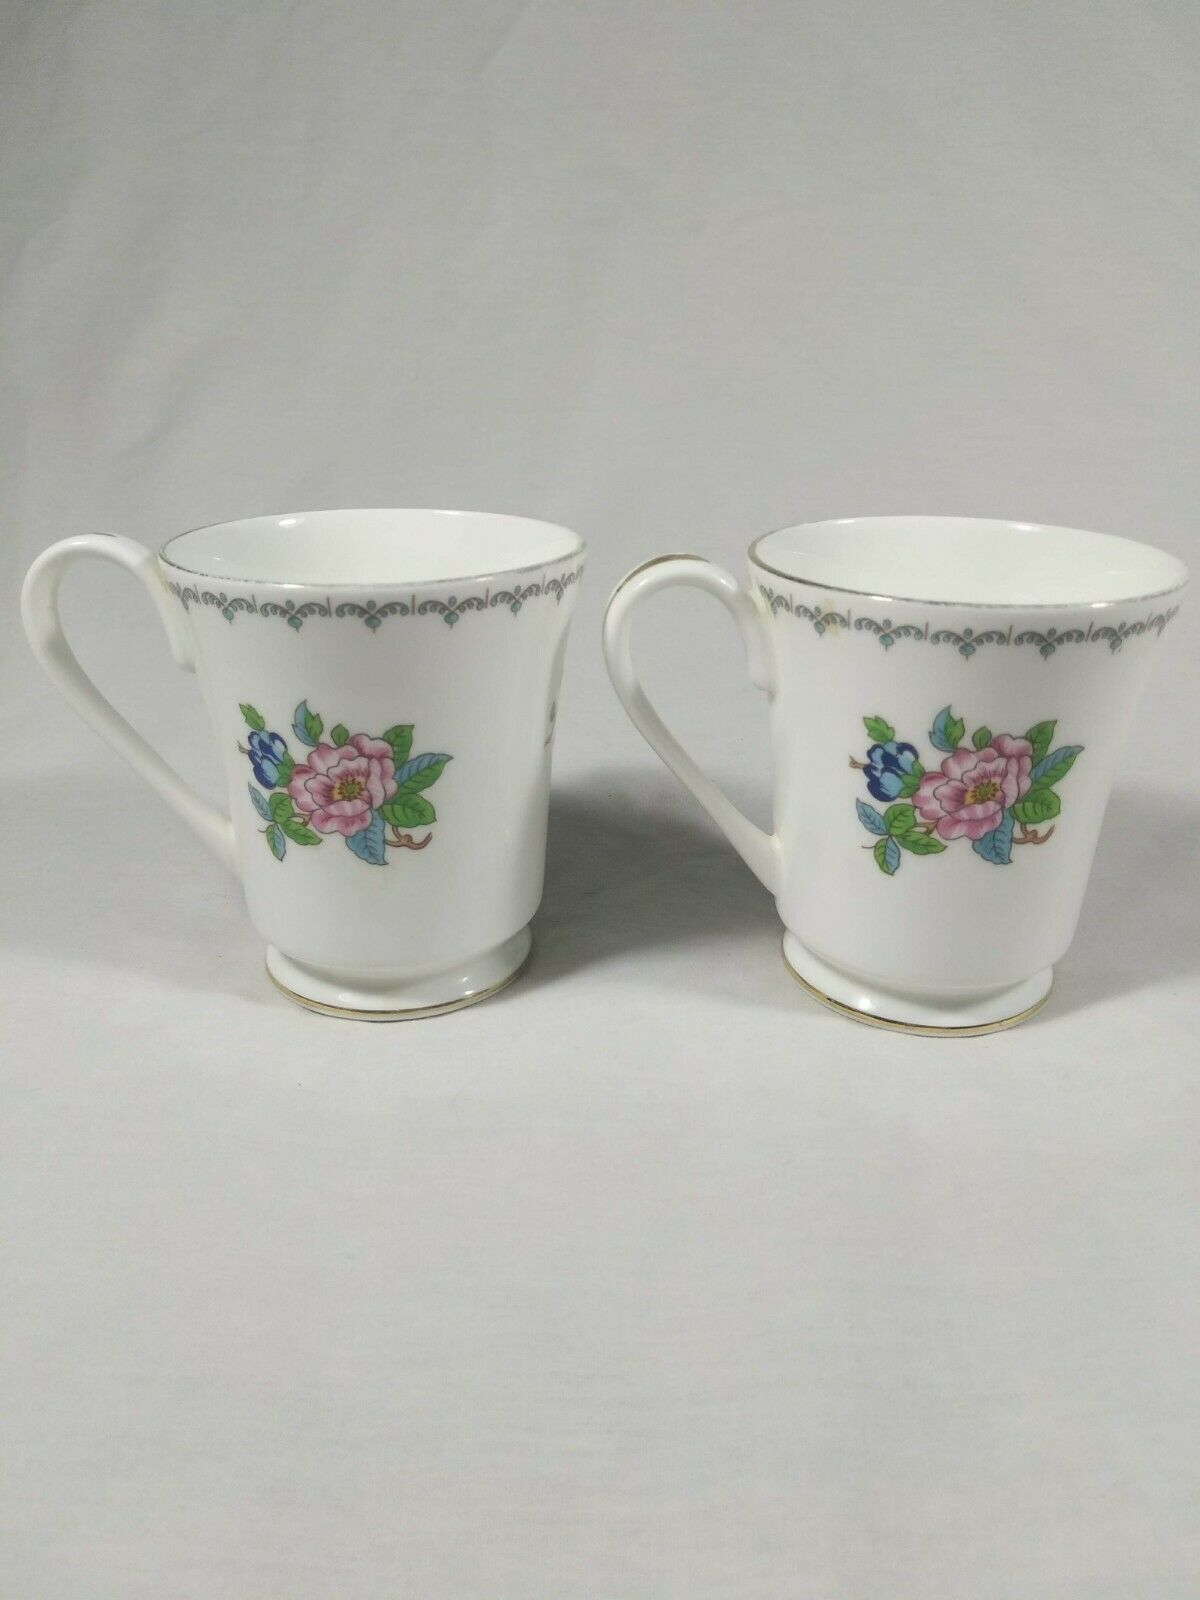 Aynsley Pembroke Tea Cups Fine English Bone China Birds Floral Set of 2 Mugs image 5